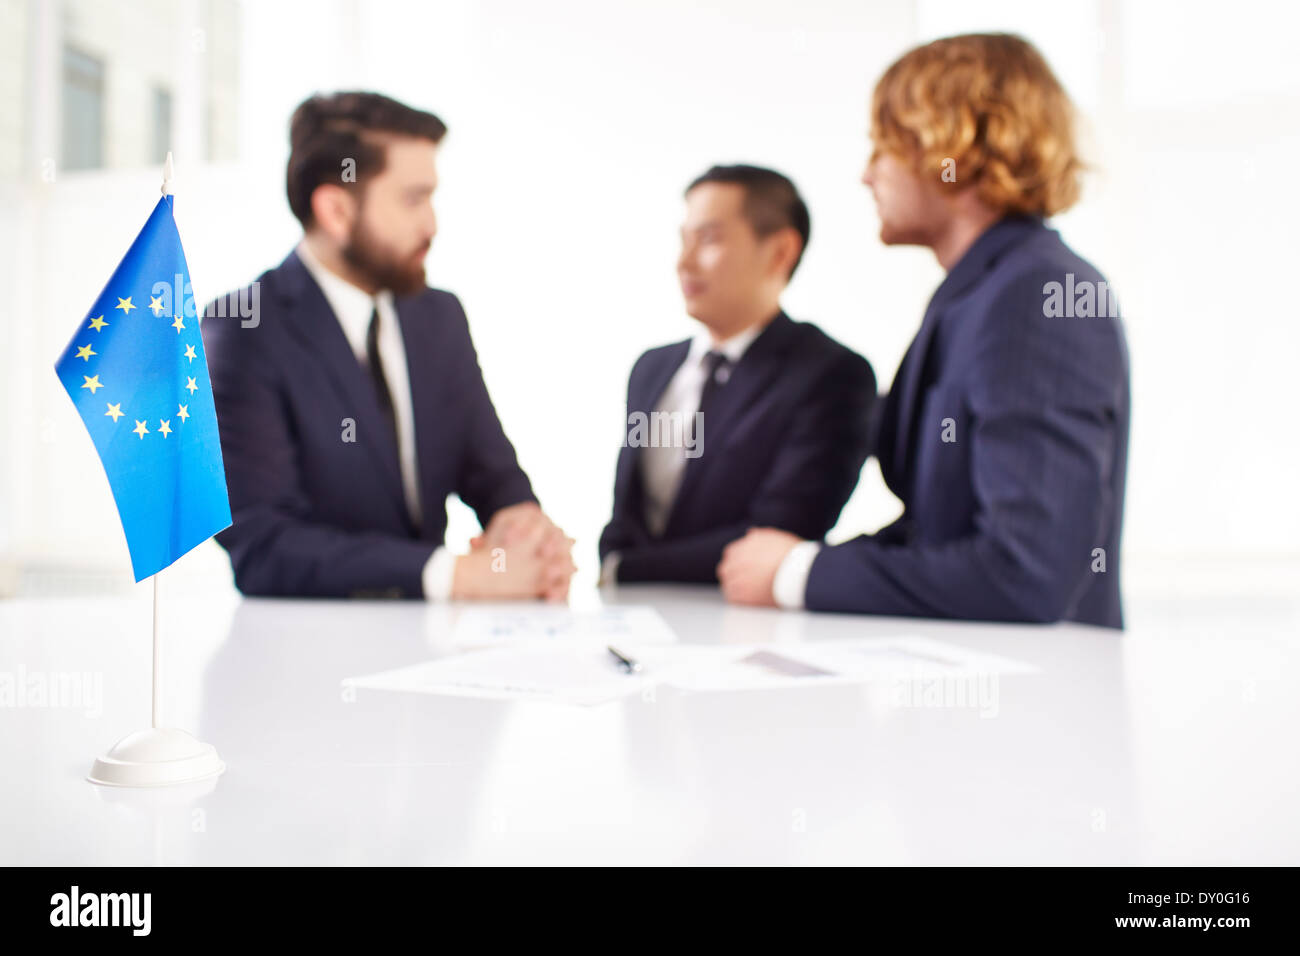 Image of European flag on workplace with three partners negotiating on background - Stock Image